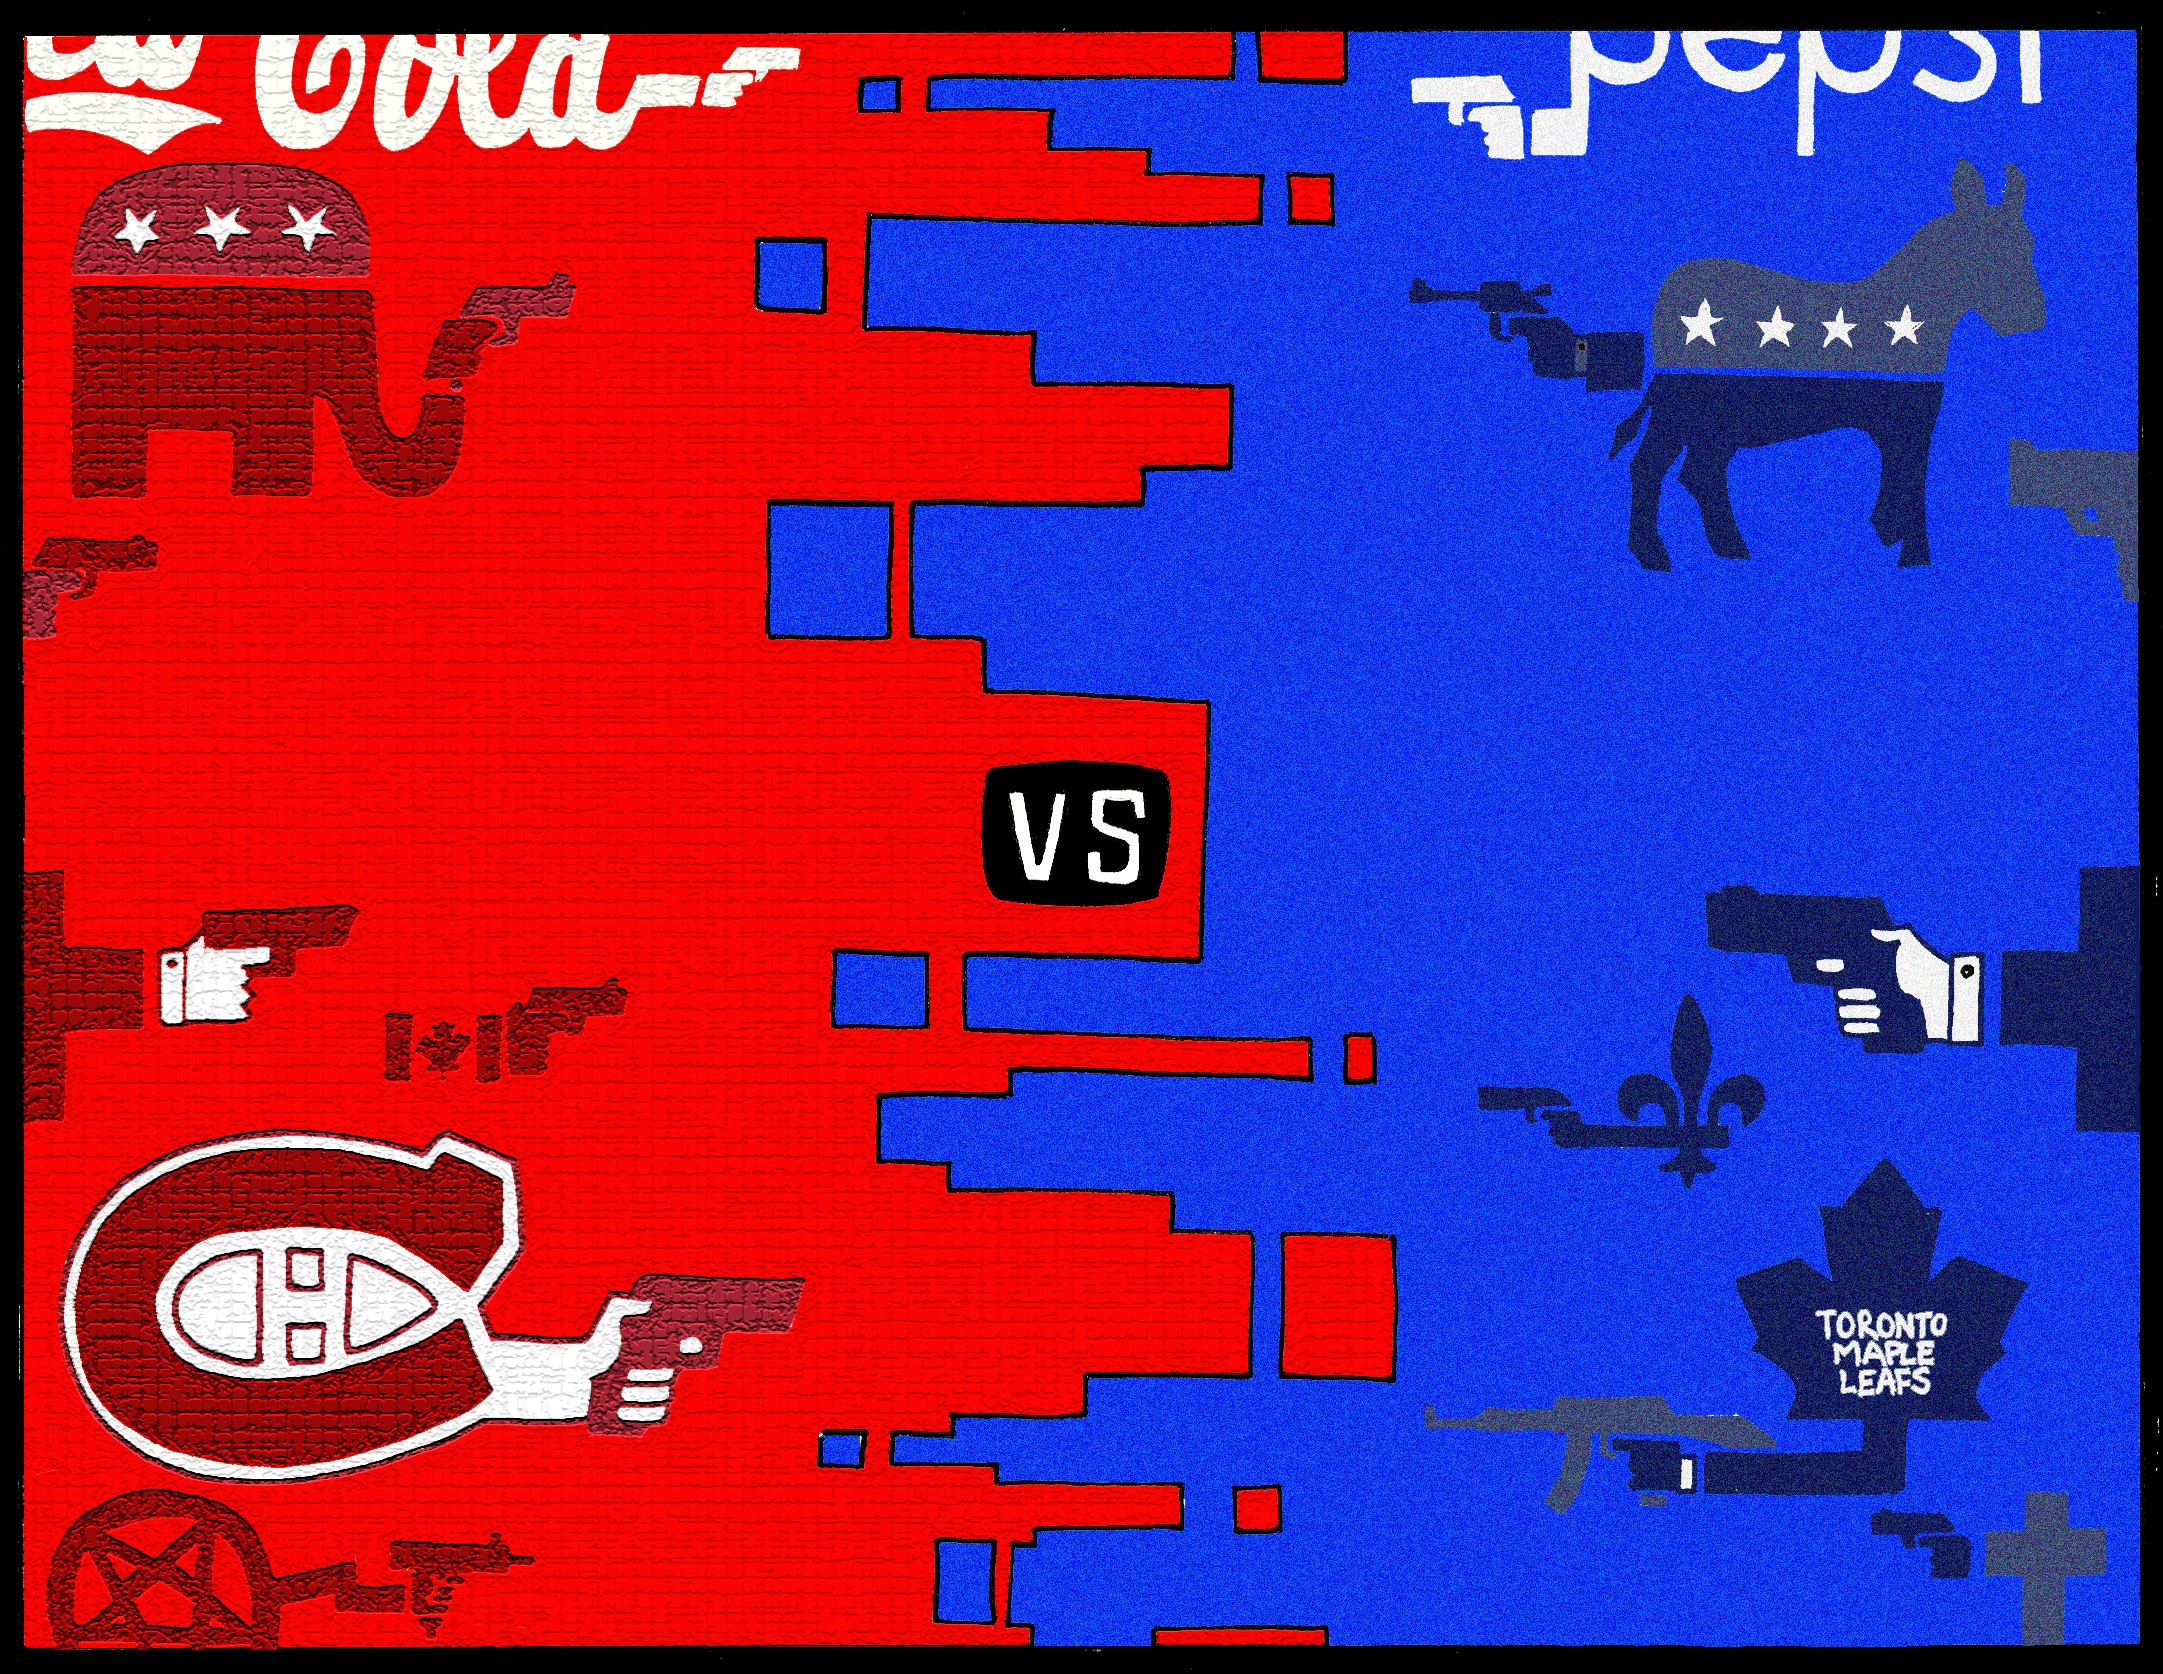 Canadiens versus the maple leafs color based rivalries for a color